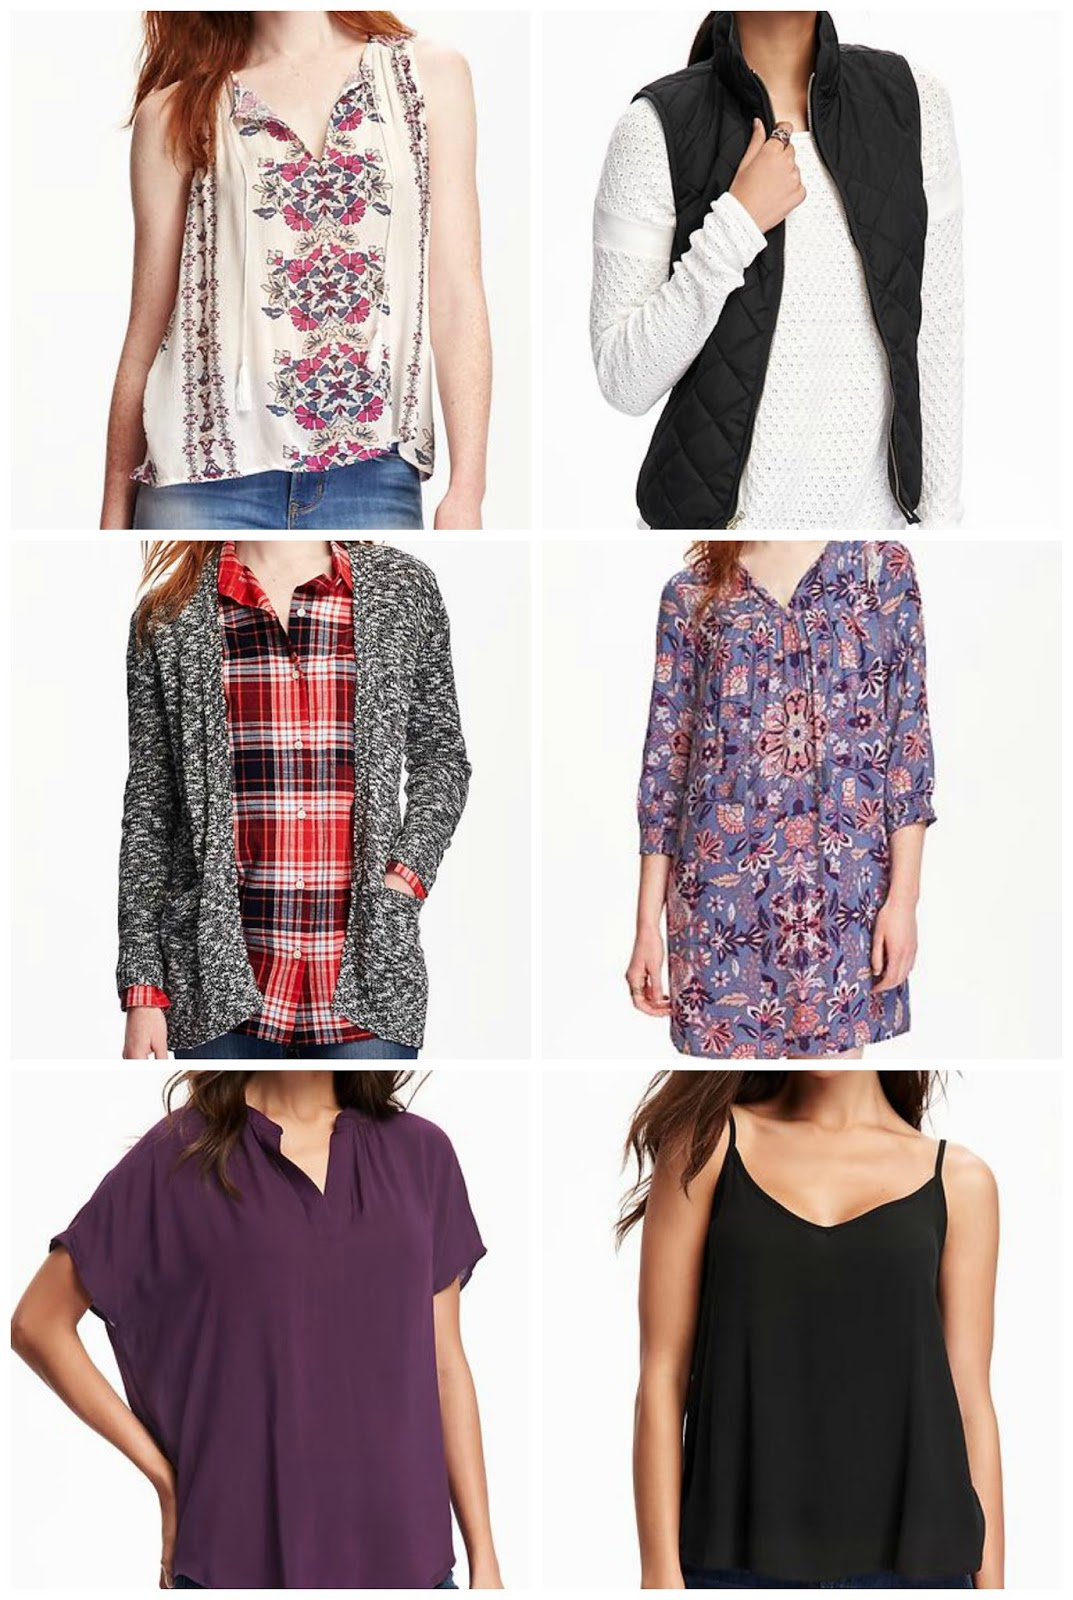 Old Navy Summer/Fall Pieces